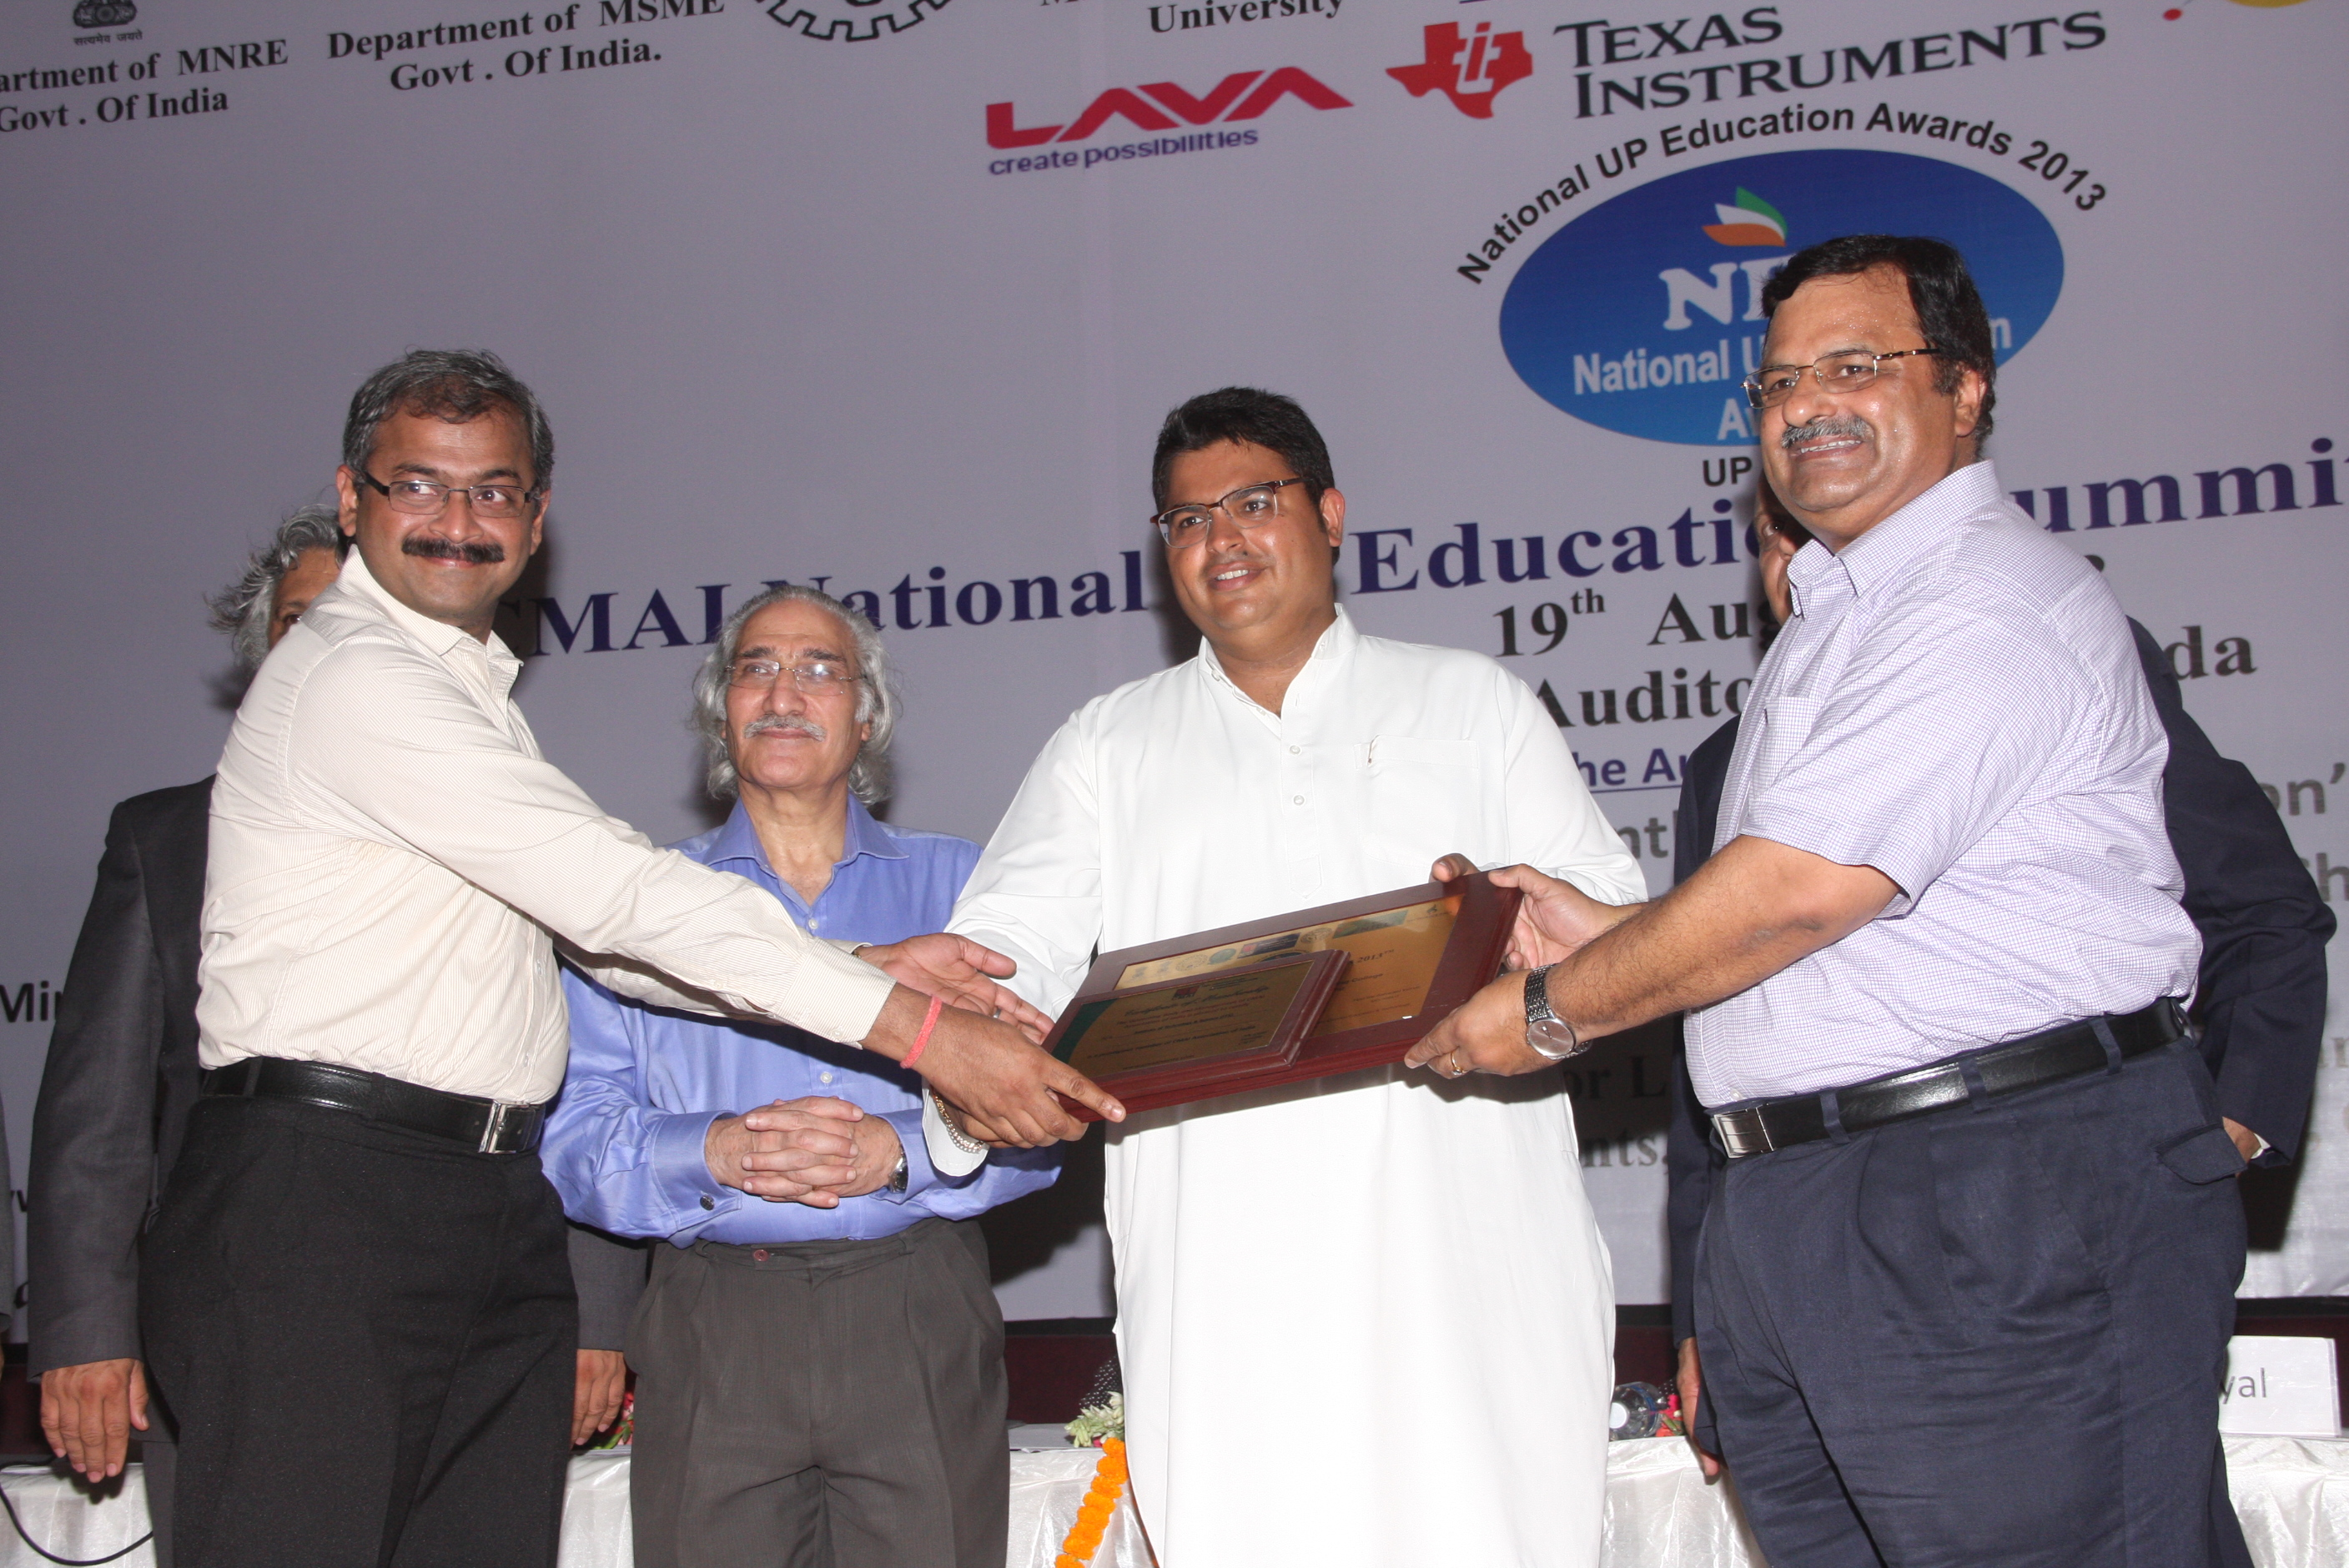 CMAI National UP Education Award 2013